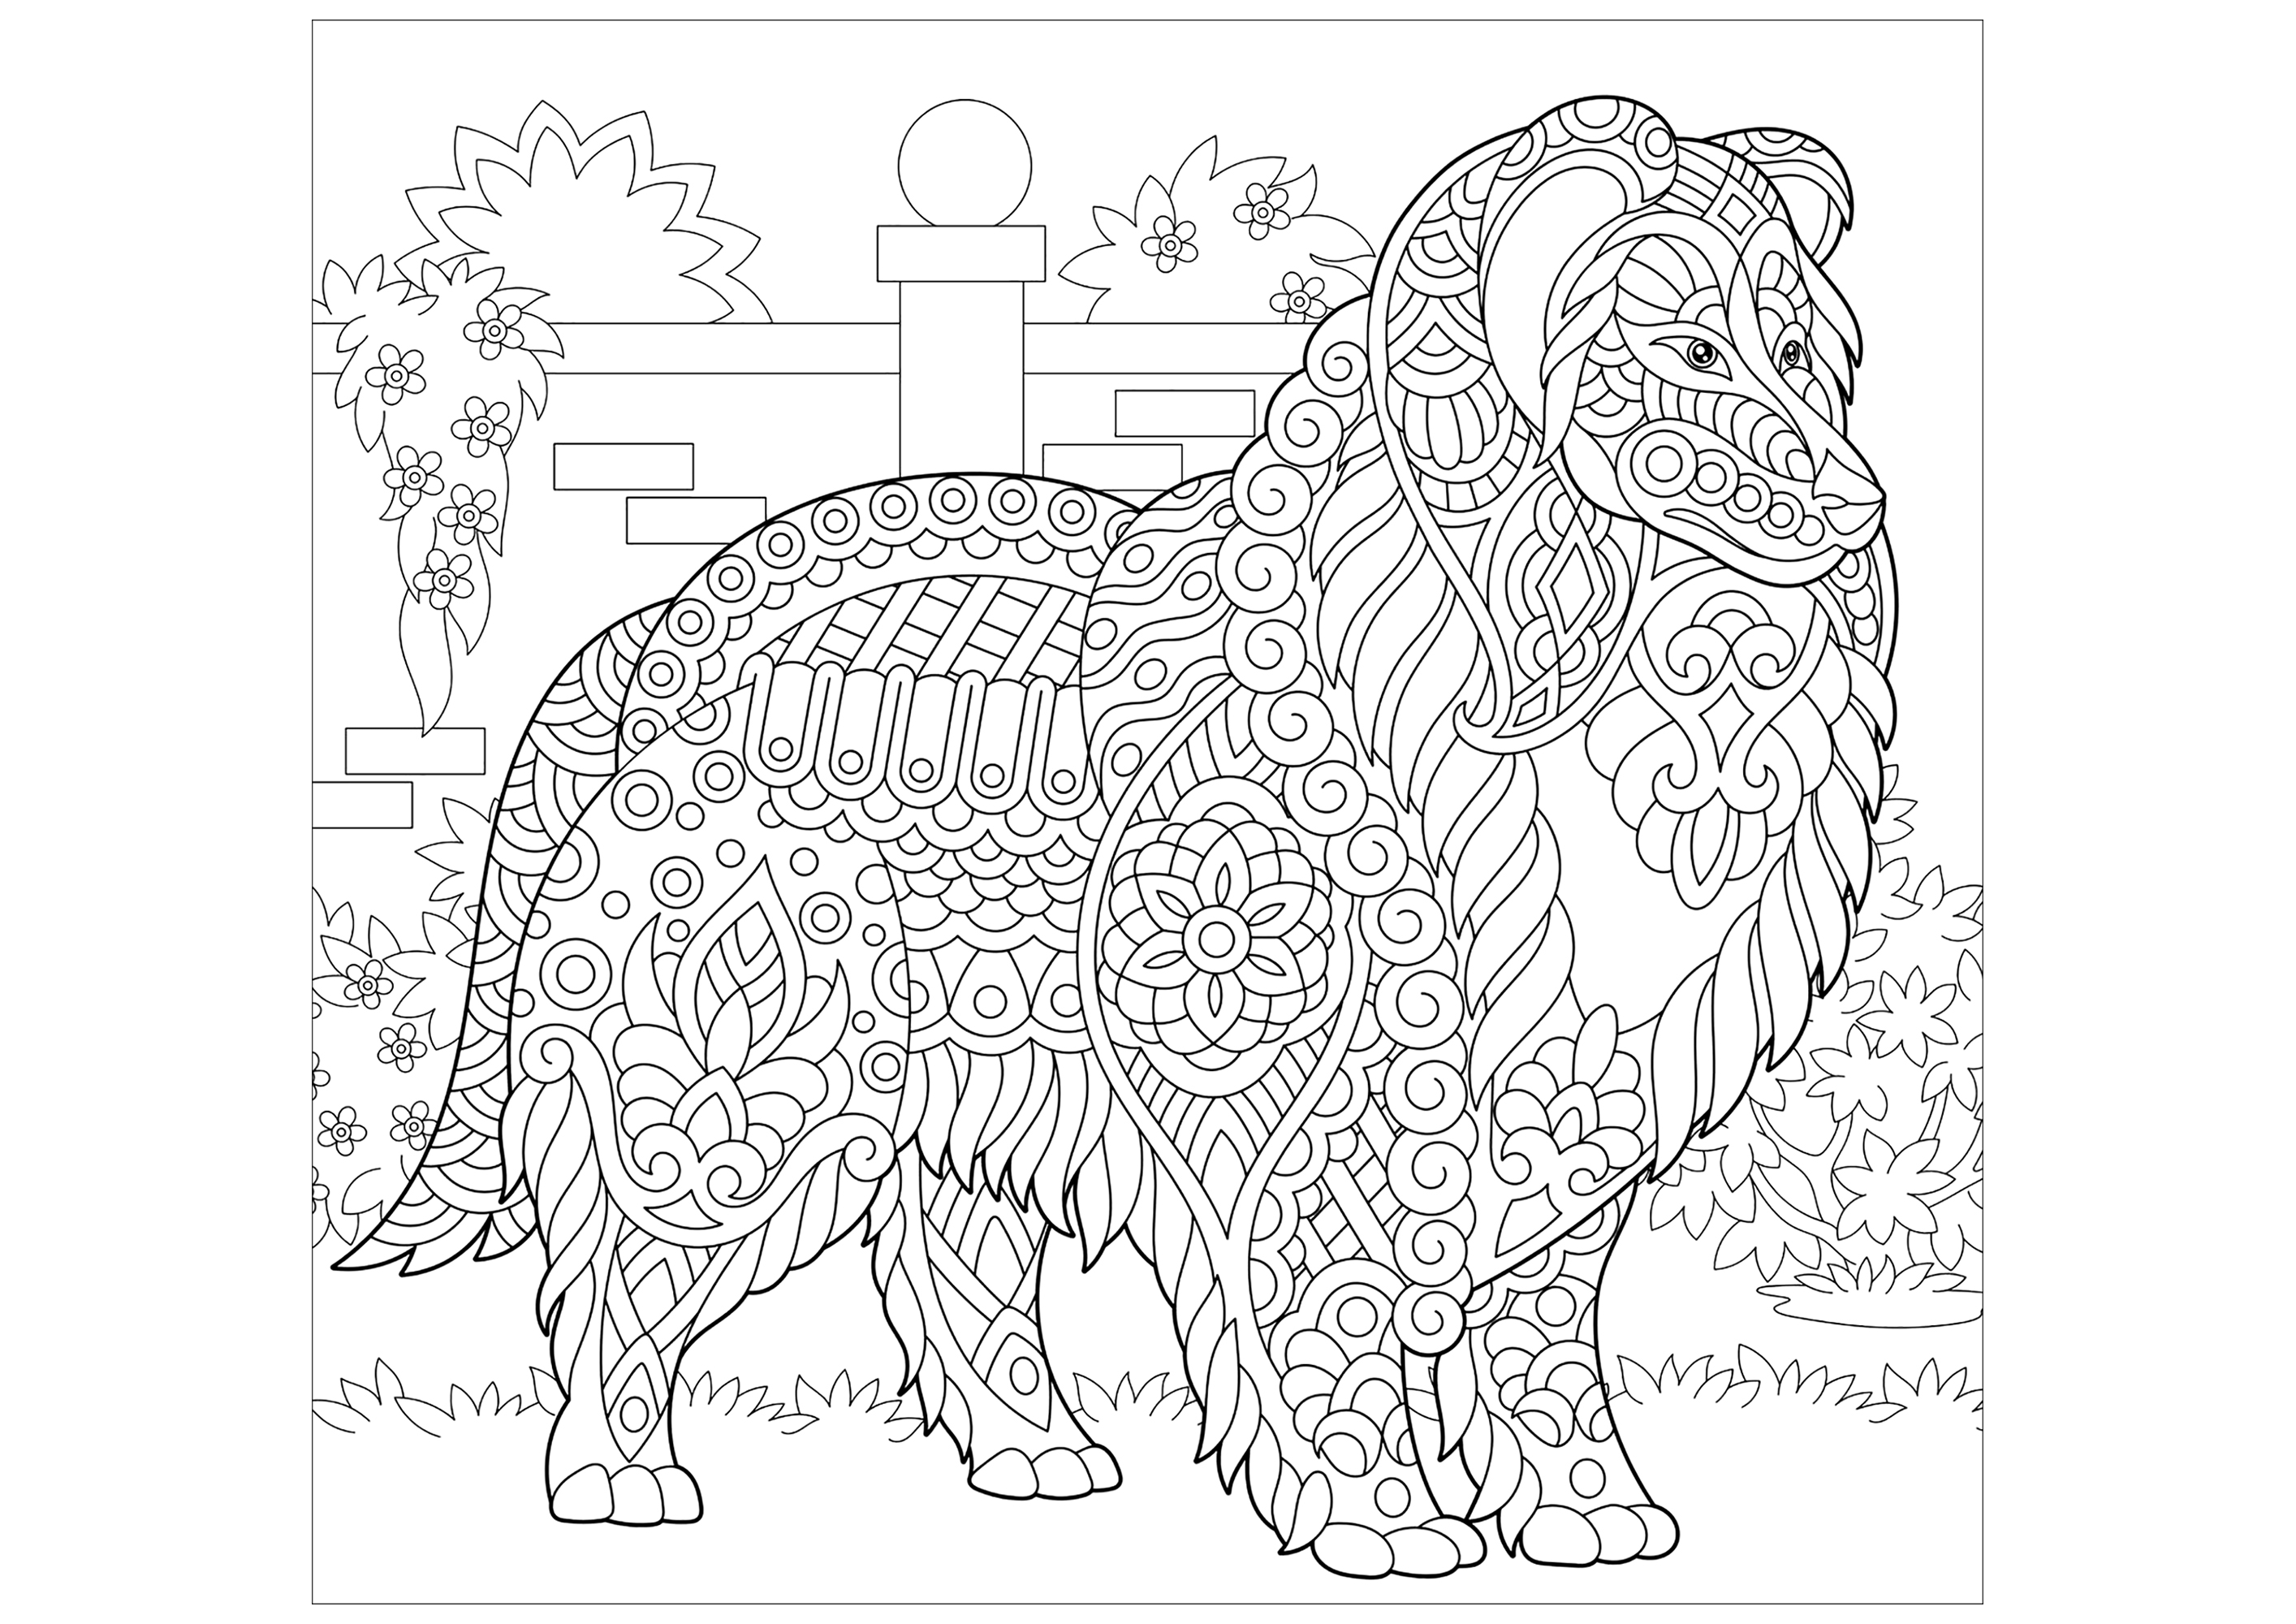 Beautiful Dogs coloring page to print and color